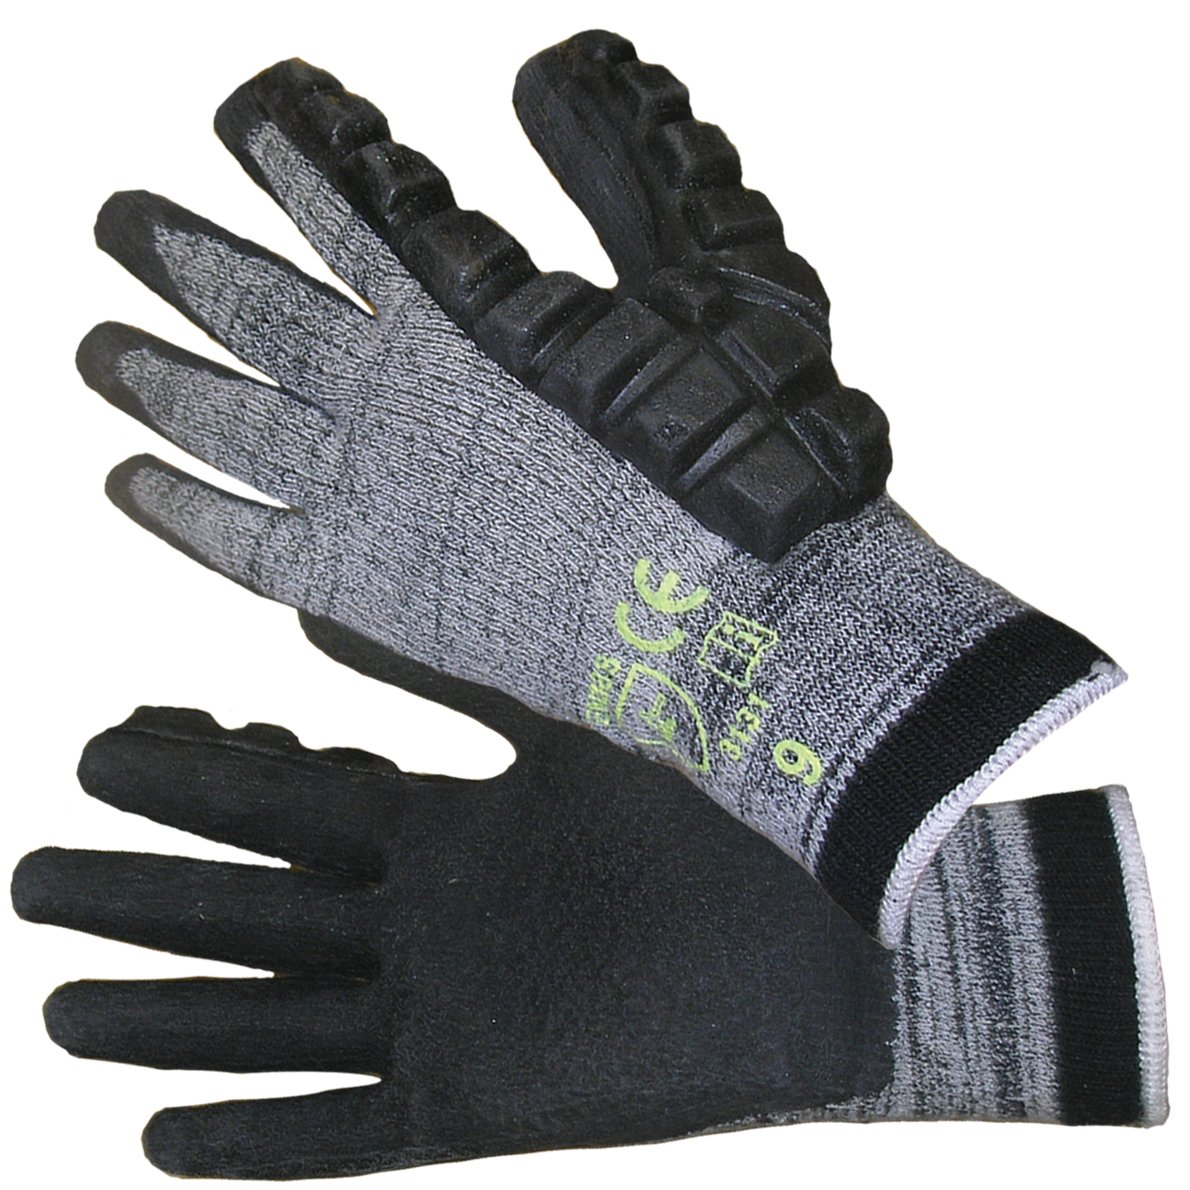 Impacto DP470031 Anti-Impact Hammer Glove, Grey